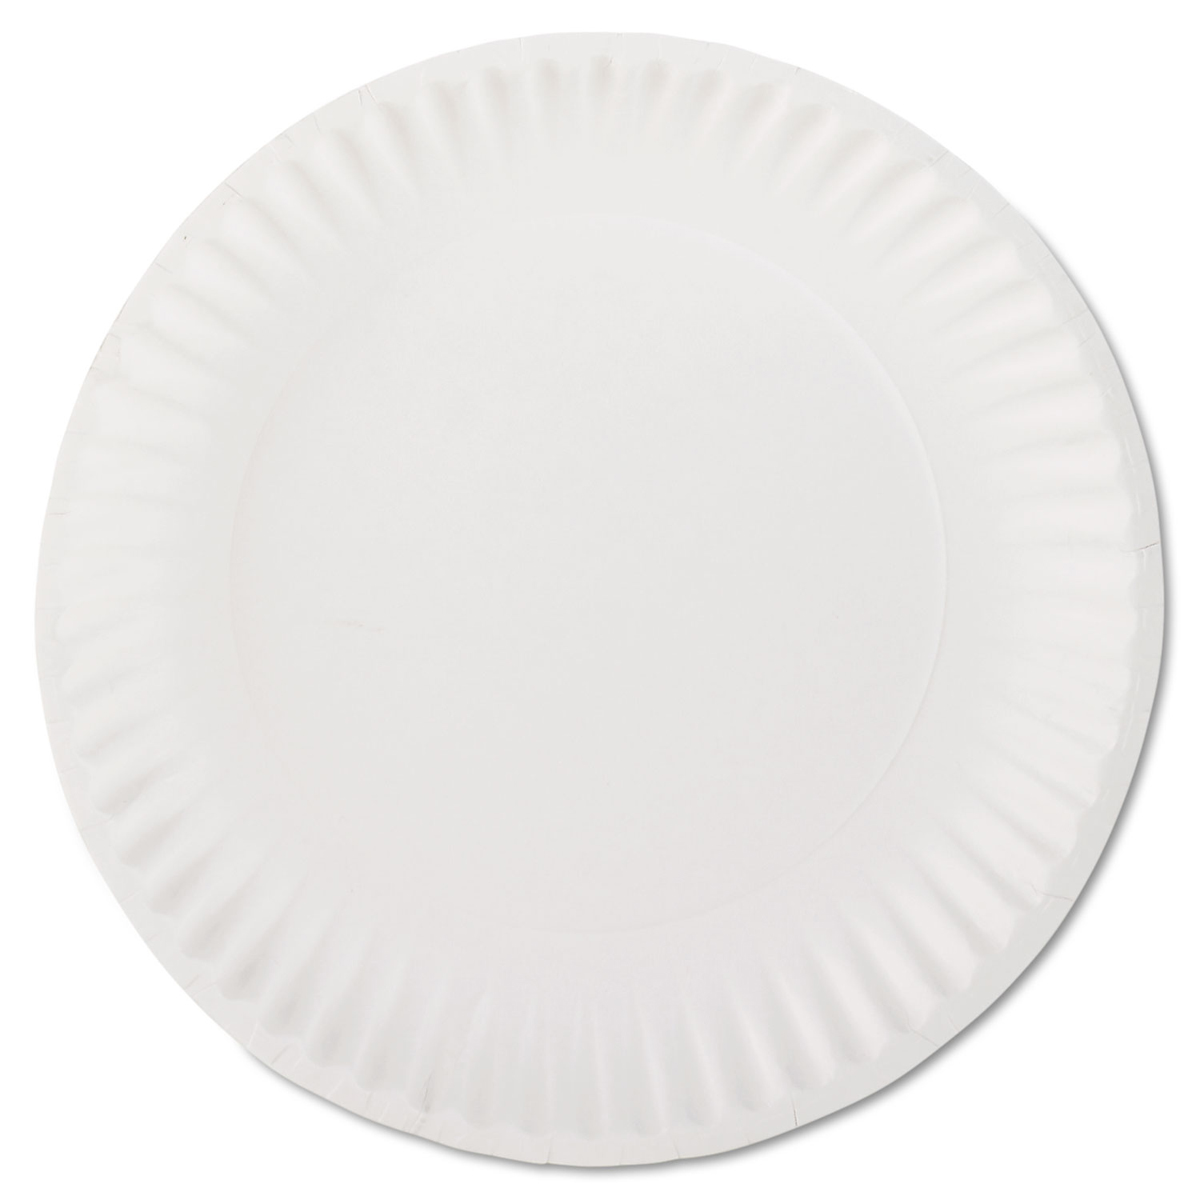 "White Paper Plates, 9"" Diameter, 100/Bag, 10 Bags/Carton"